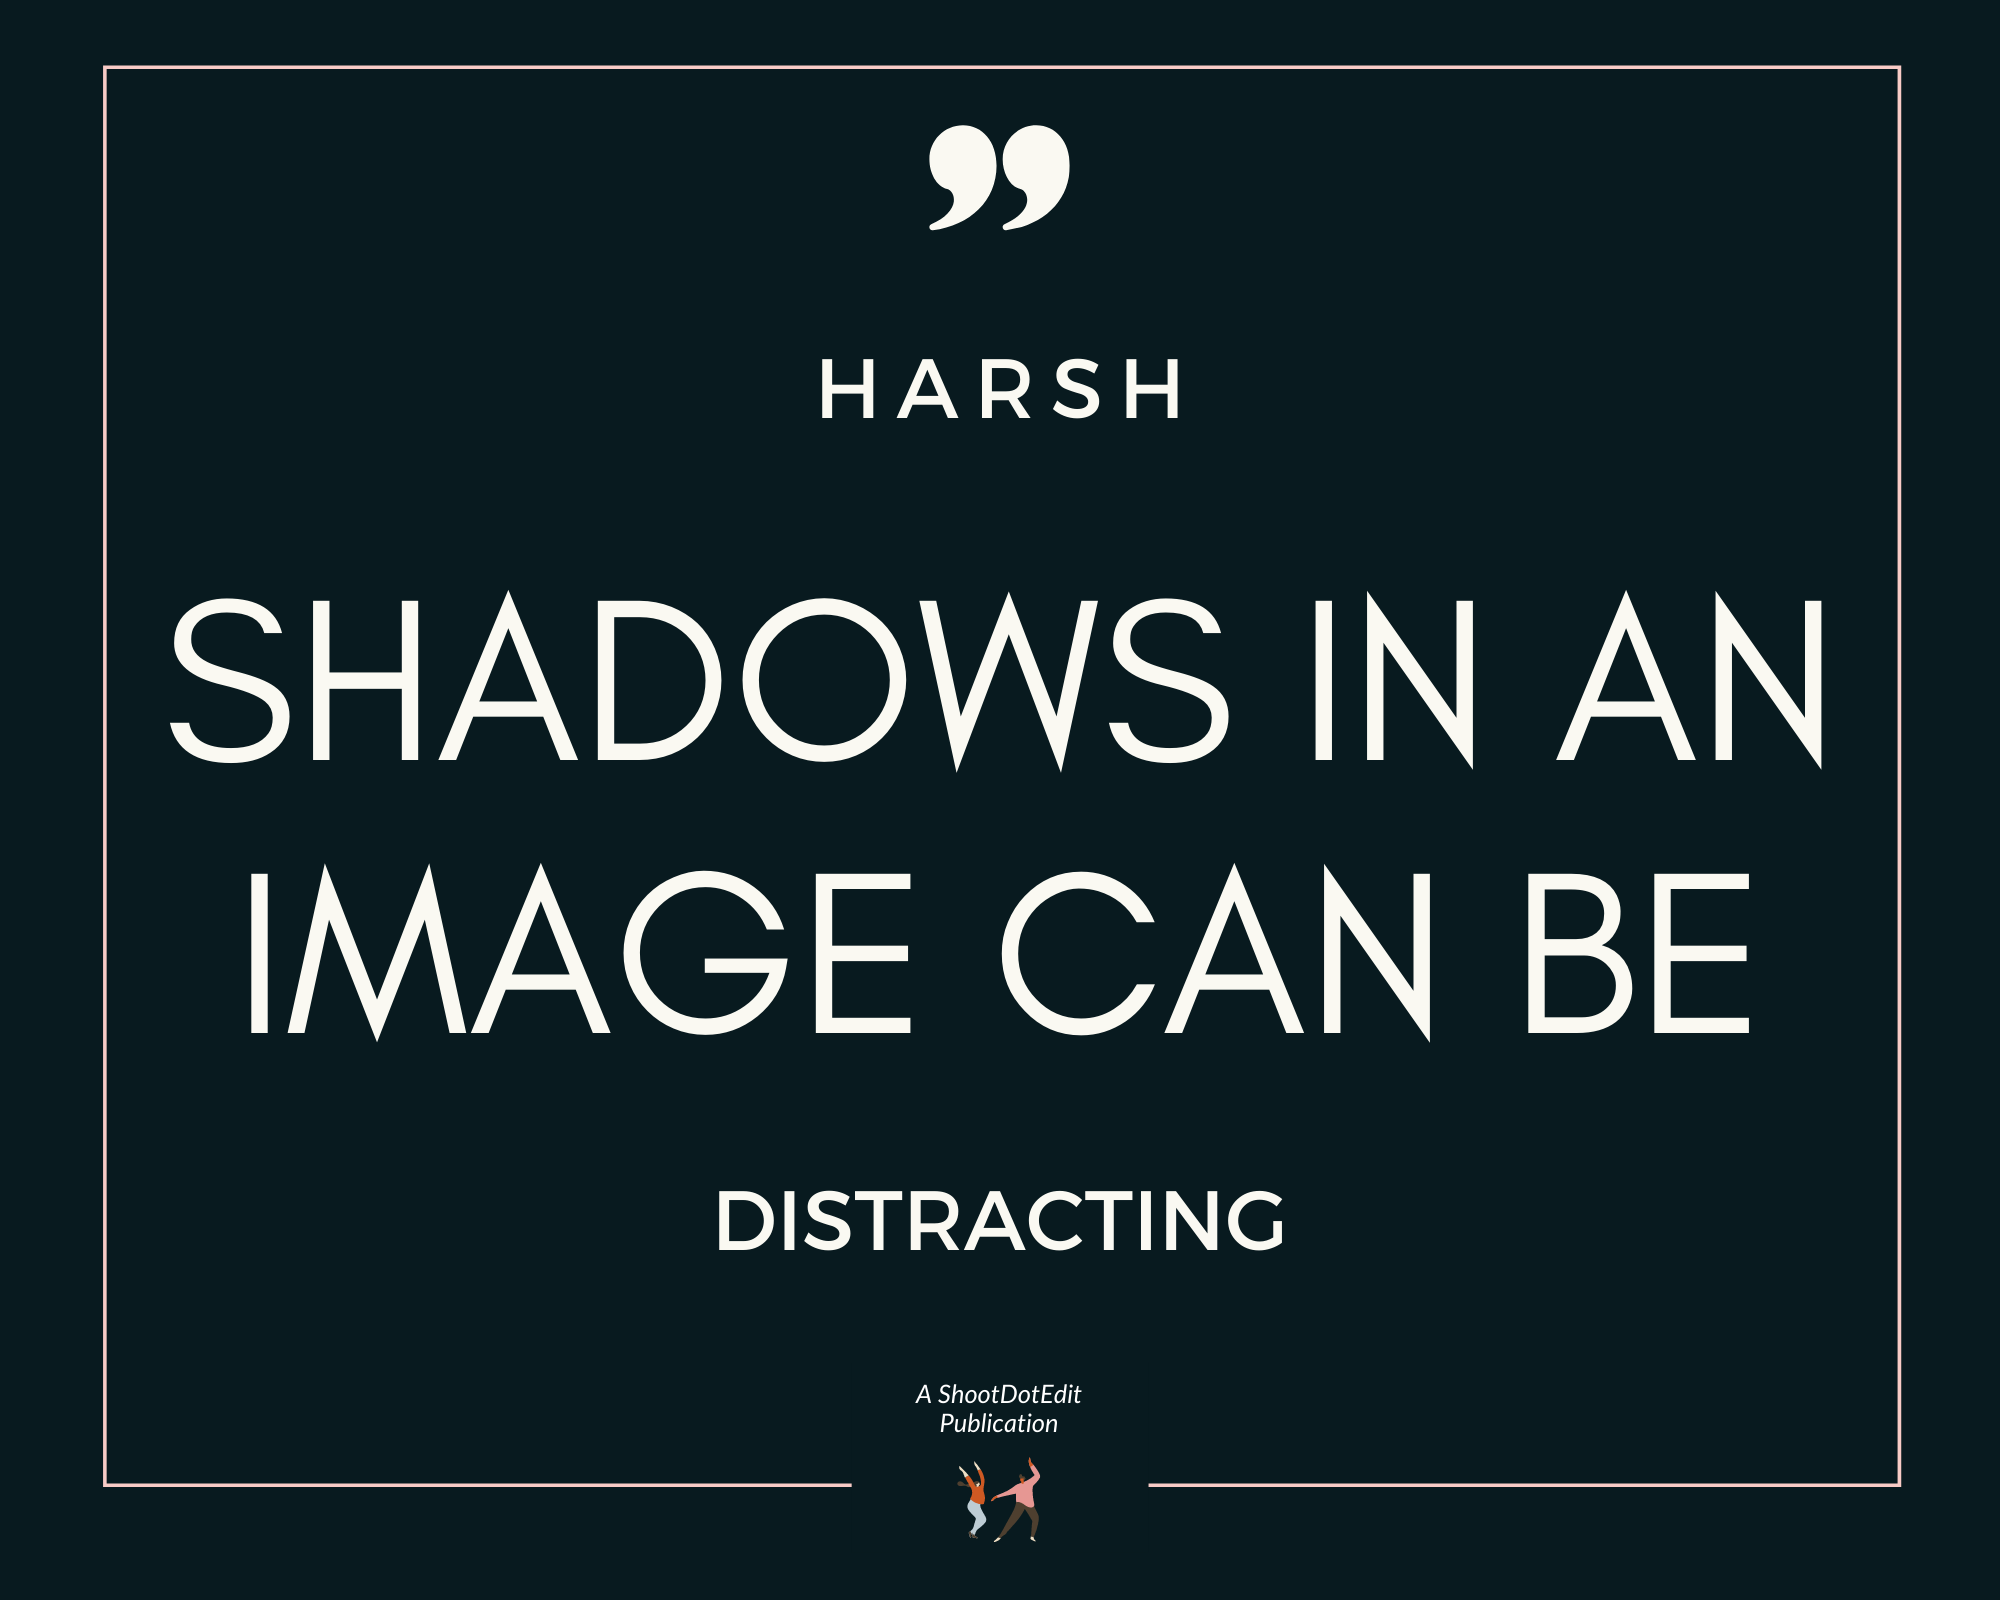 Infographic stating harsh shadows in an image can be distracting